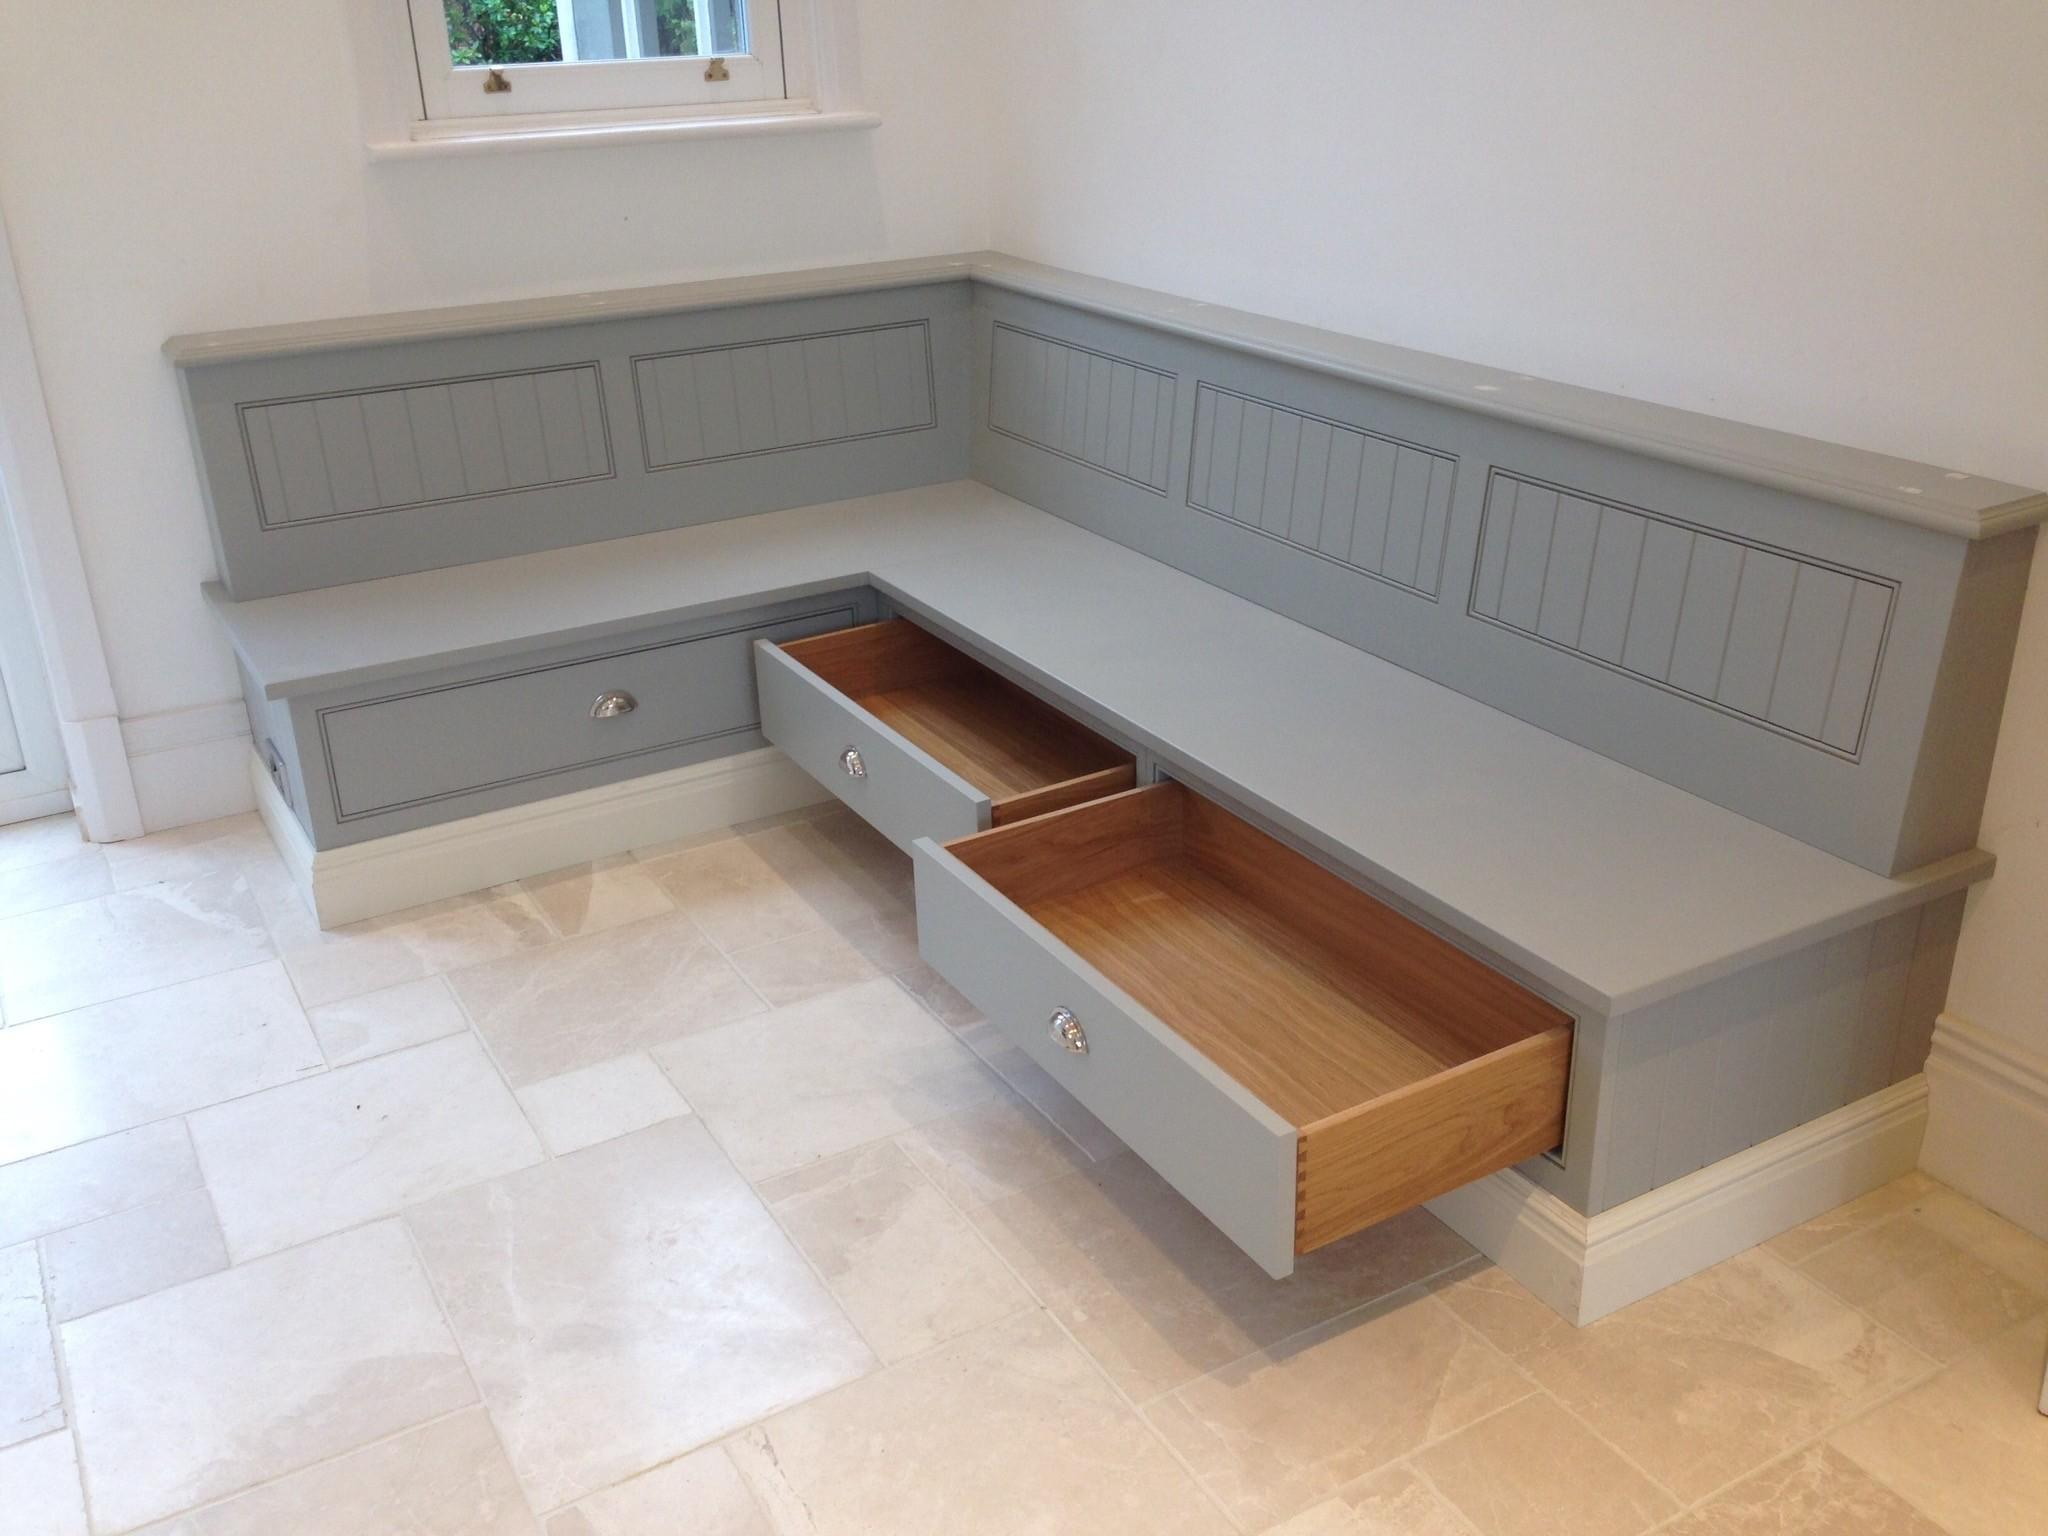 Kitchen Banquette Seating Storage